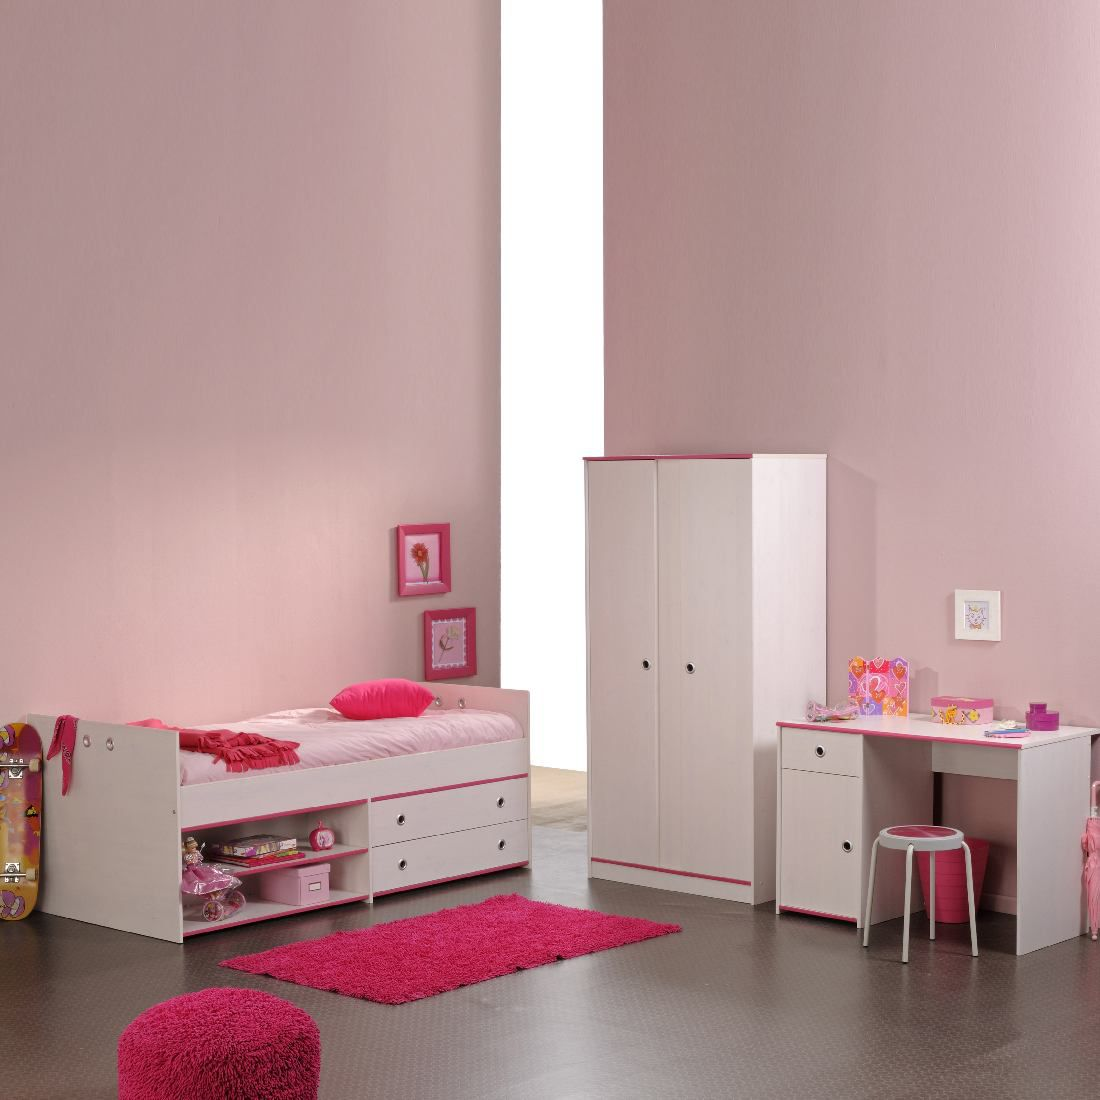 kinderzimmer set m dchen. Black Bedroom Furniture Sets. Home Design Ideas